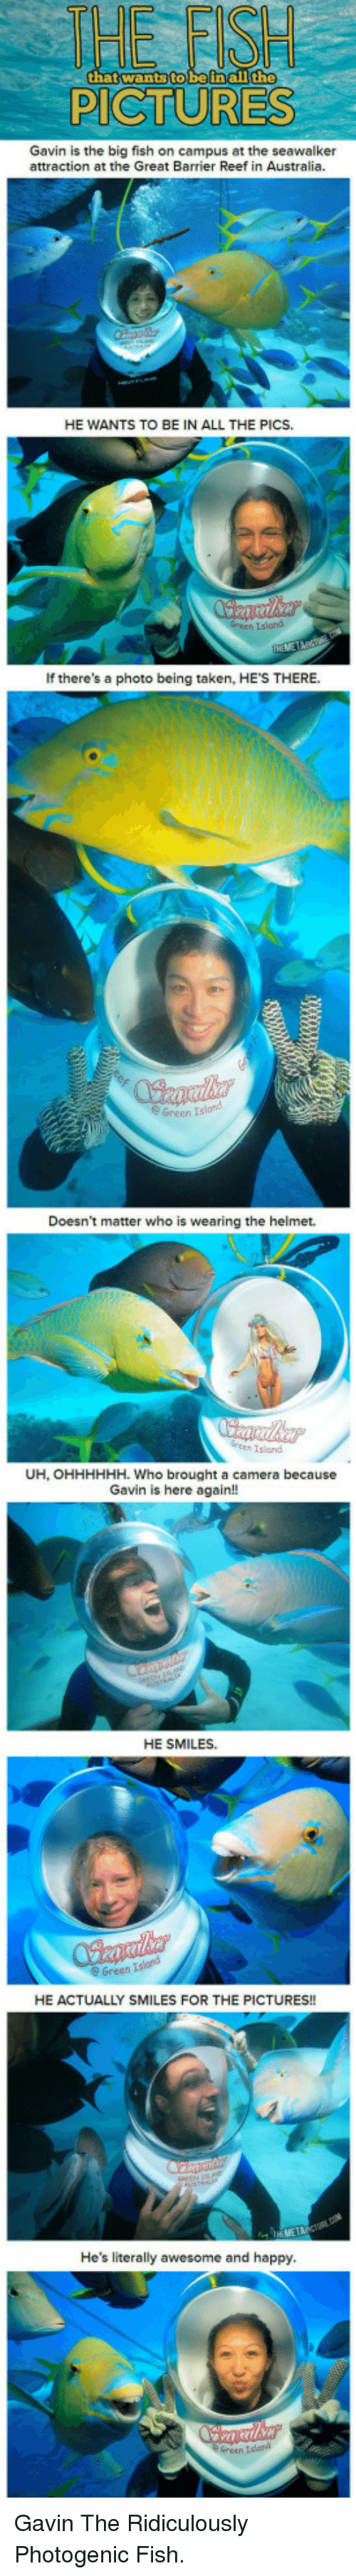 Big Fish: that wantsto beinall the  PICTURES  Gavin is the big fish on campus at the seawalker  attraction at the Great Barrier Reef in Australia.  HE WANTS TO BE IN ALL THE PICS.  If there's a photo being taken, HE'S THERE.  Green Island  Doesn't matter who is wearing the helmet.  Island  UH, OHHHHHH. Who brought a camera because  Gavin is here again!!  HE SMILES.  HE ACTUALLY SMILES FOR THE PICTURES!!  ME  He's literally awesome and happy  Green Island <p>Gavin The Ridiculously Photogenic Fish.</p>